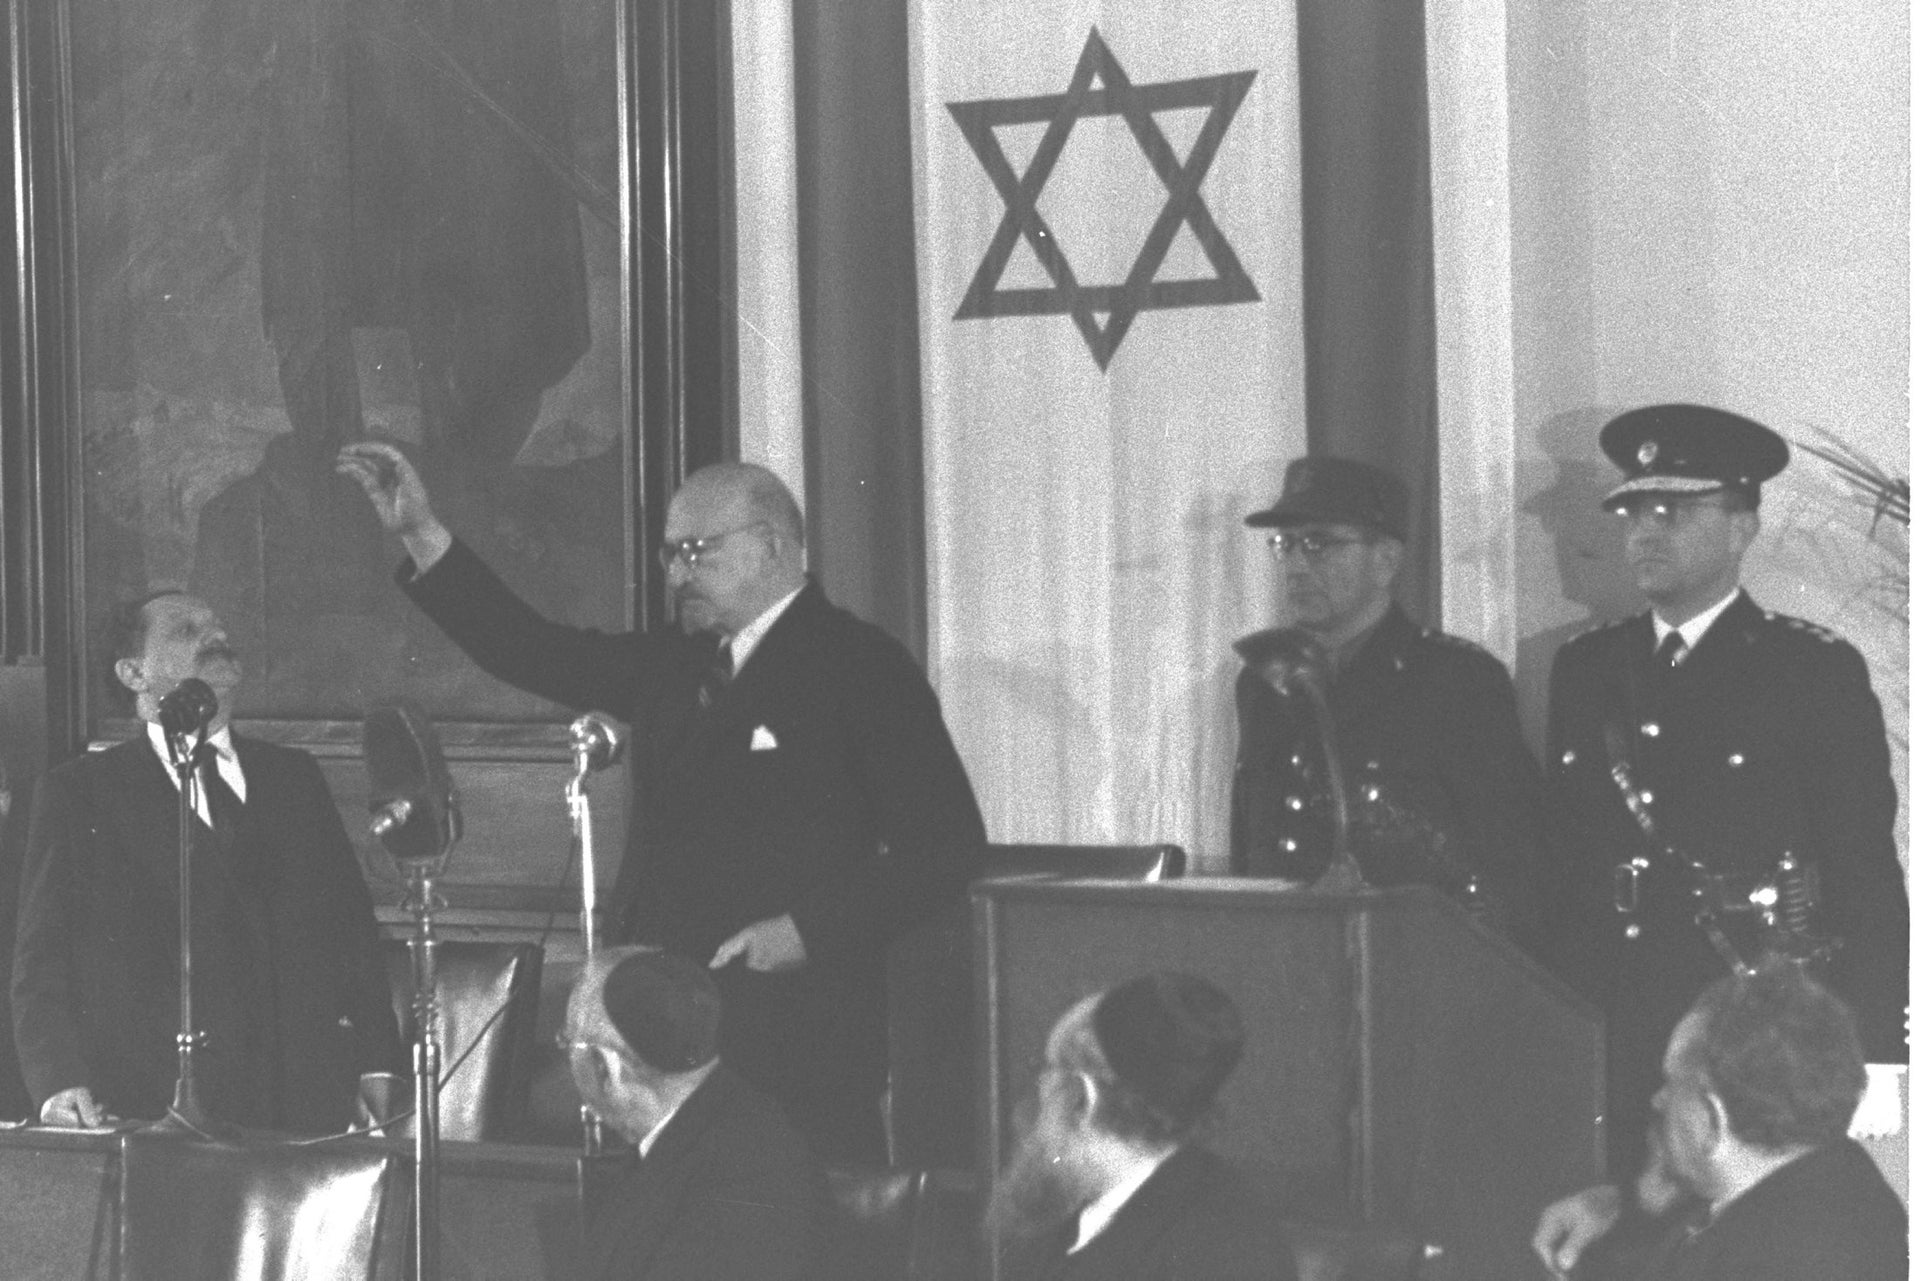 The first president of Israel Chaim Weizmann takes the oath of office in the Jewish Agency building in Jerusalem, February 17, 1949.